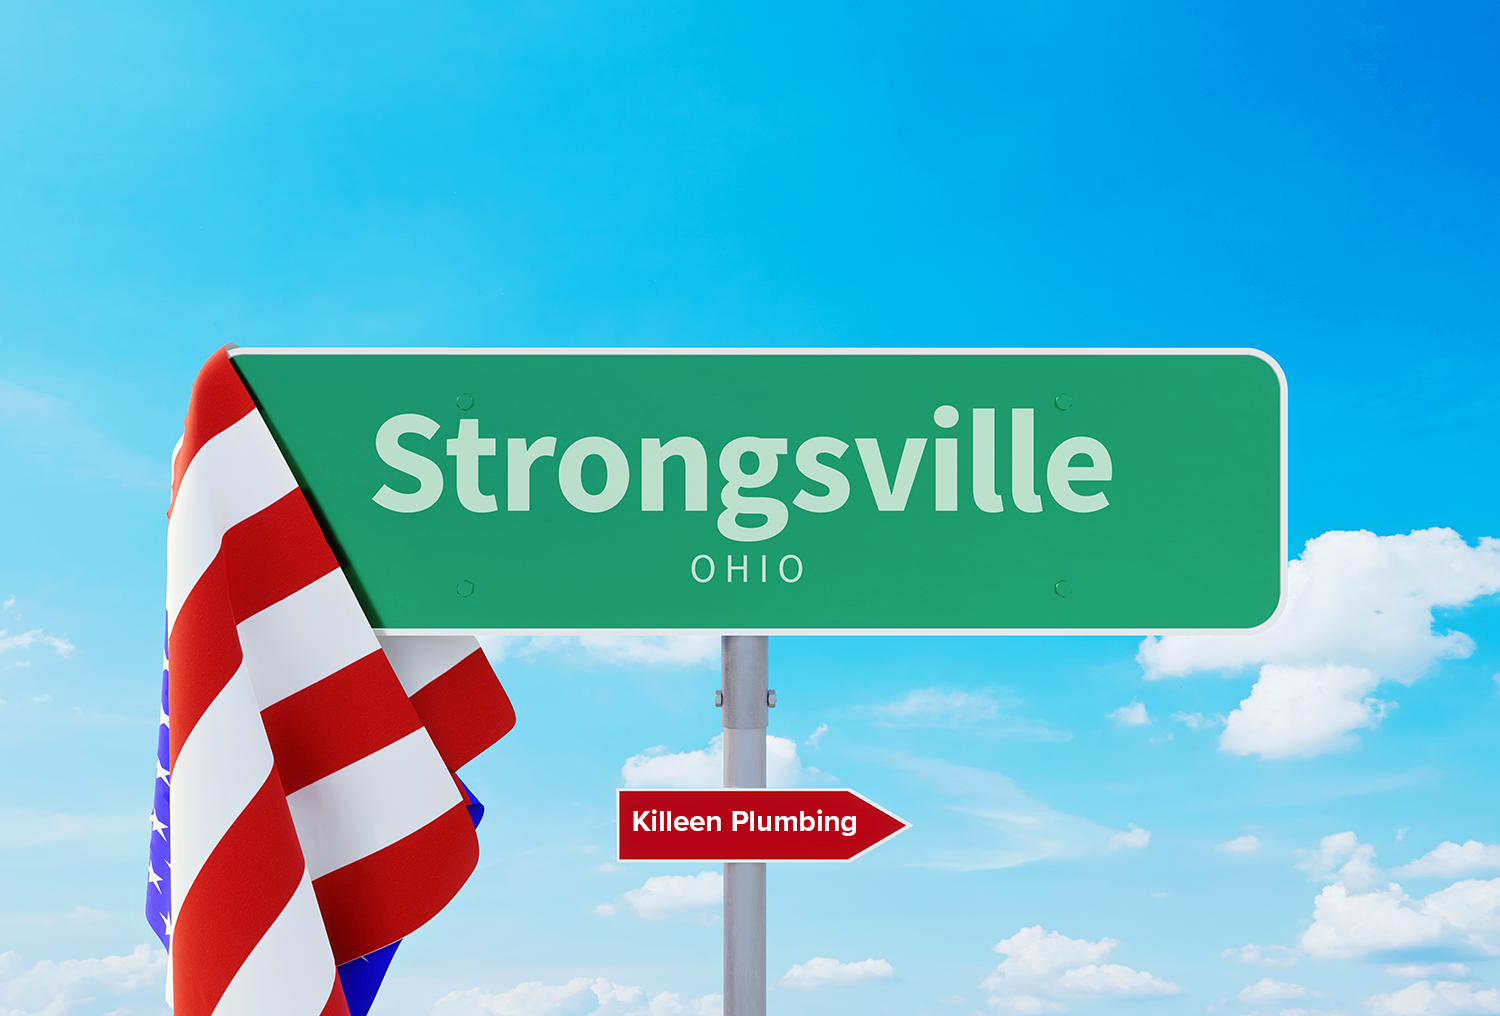 A sign for Strongsville, Ohio, pointing to Killeen Plumbing.